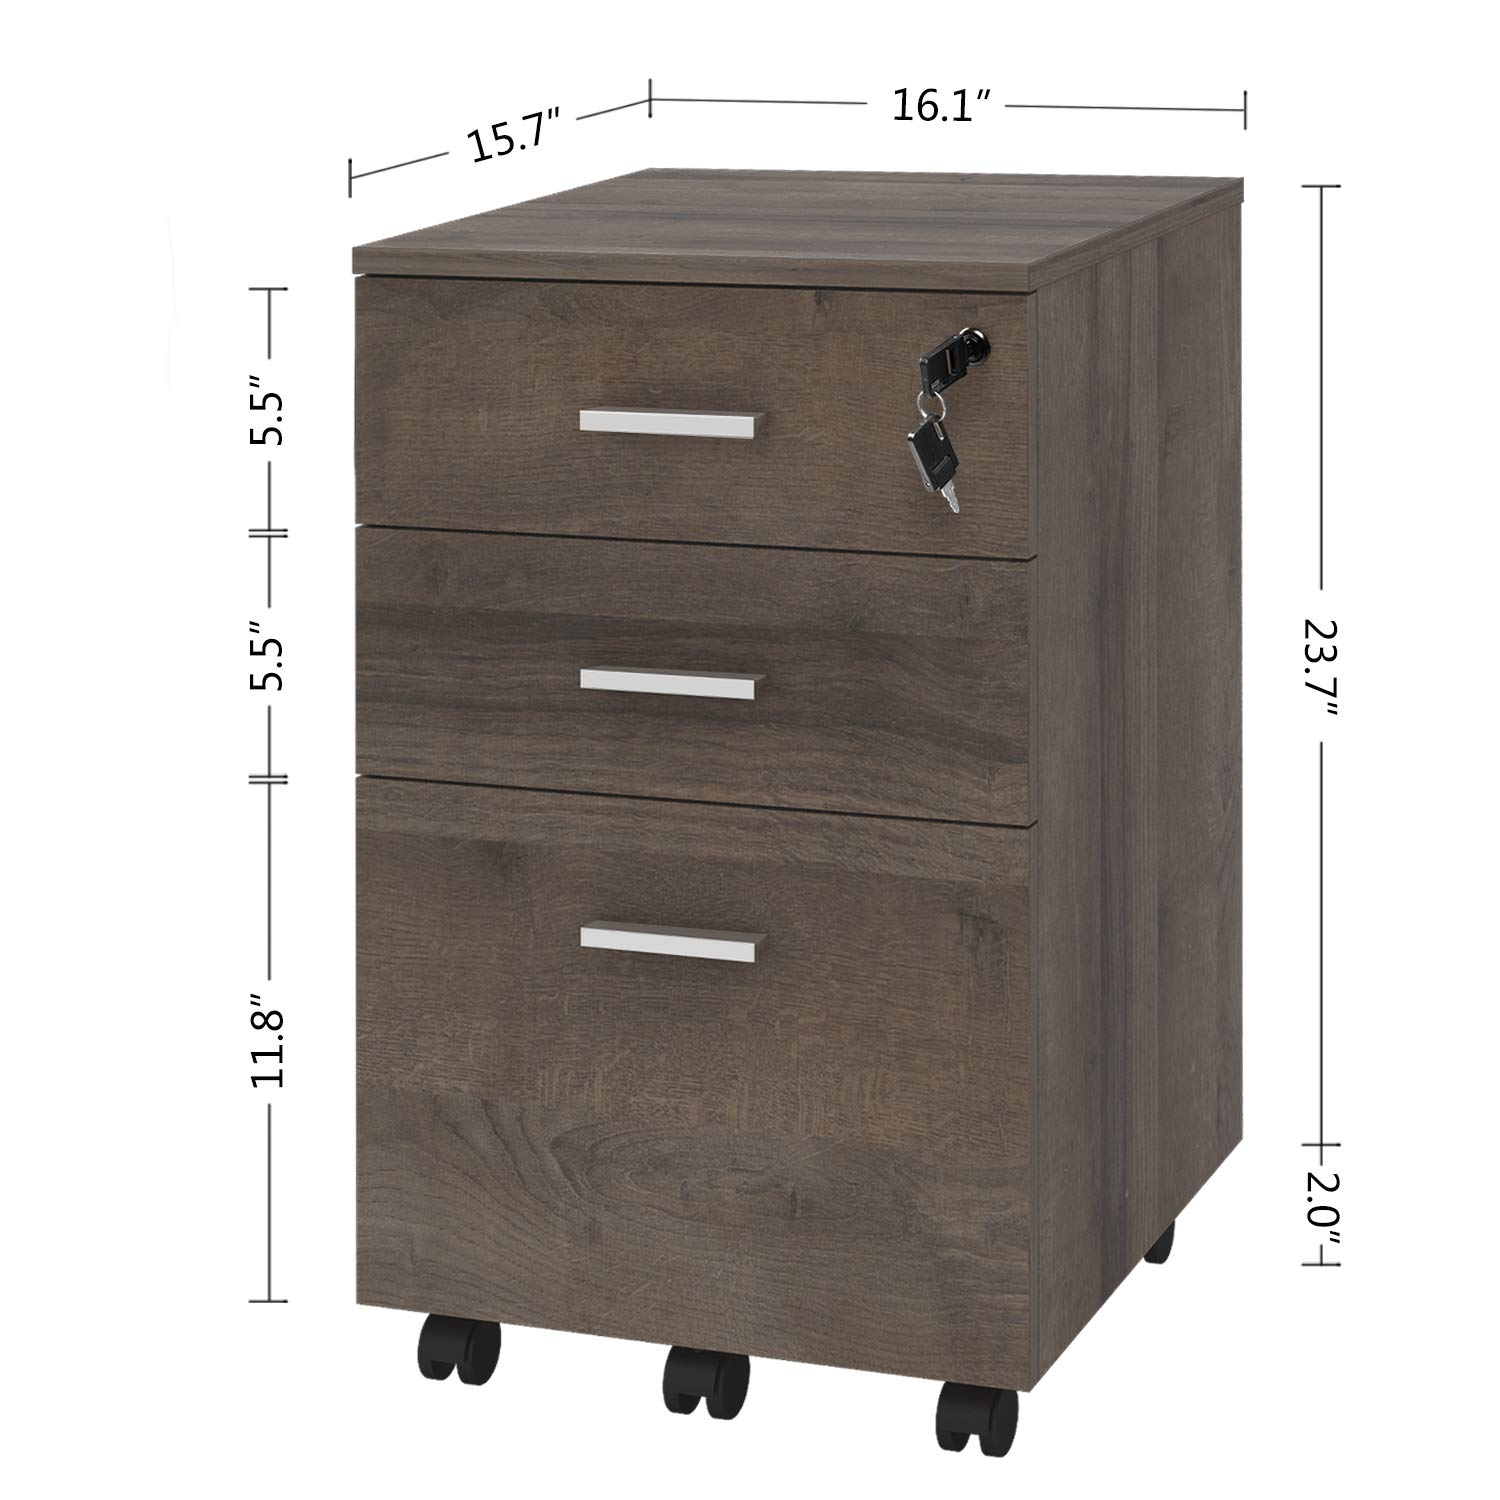 DEVAISE Locking File Cabinet, 3 Drawer Mobile Wood Cabinet, Fully Assembled Except Wheels